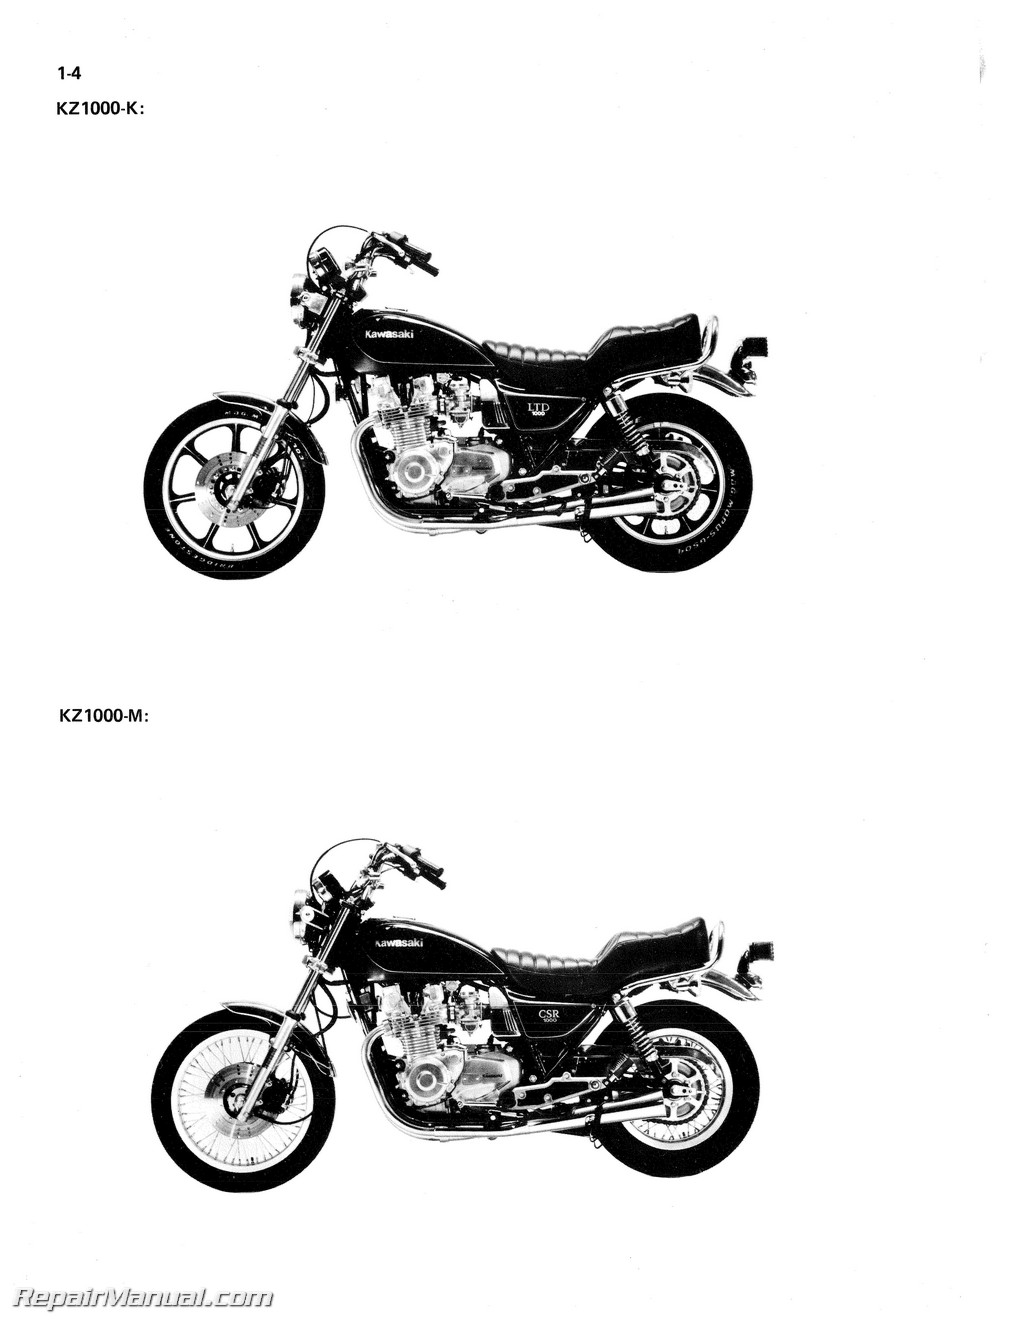 Kz1000 Csr Wiring Diagram And Schematics Power Wheels Motorcycle 1981 1982 Kawasaki Kz1100 Repair Service Manual Source